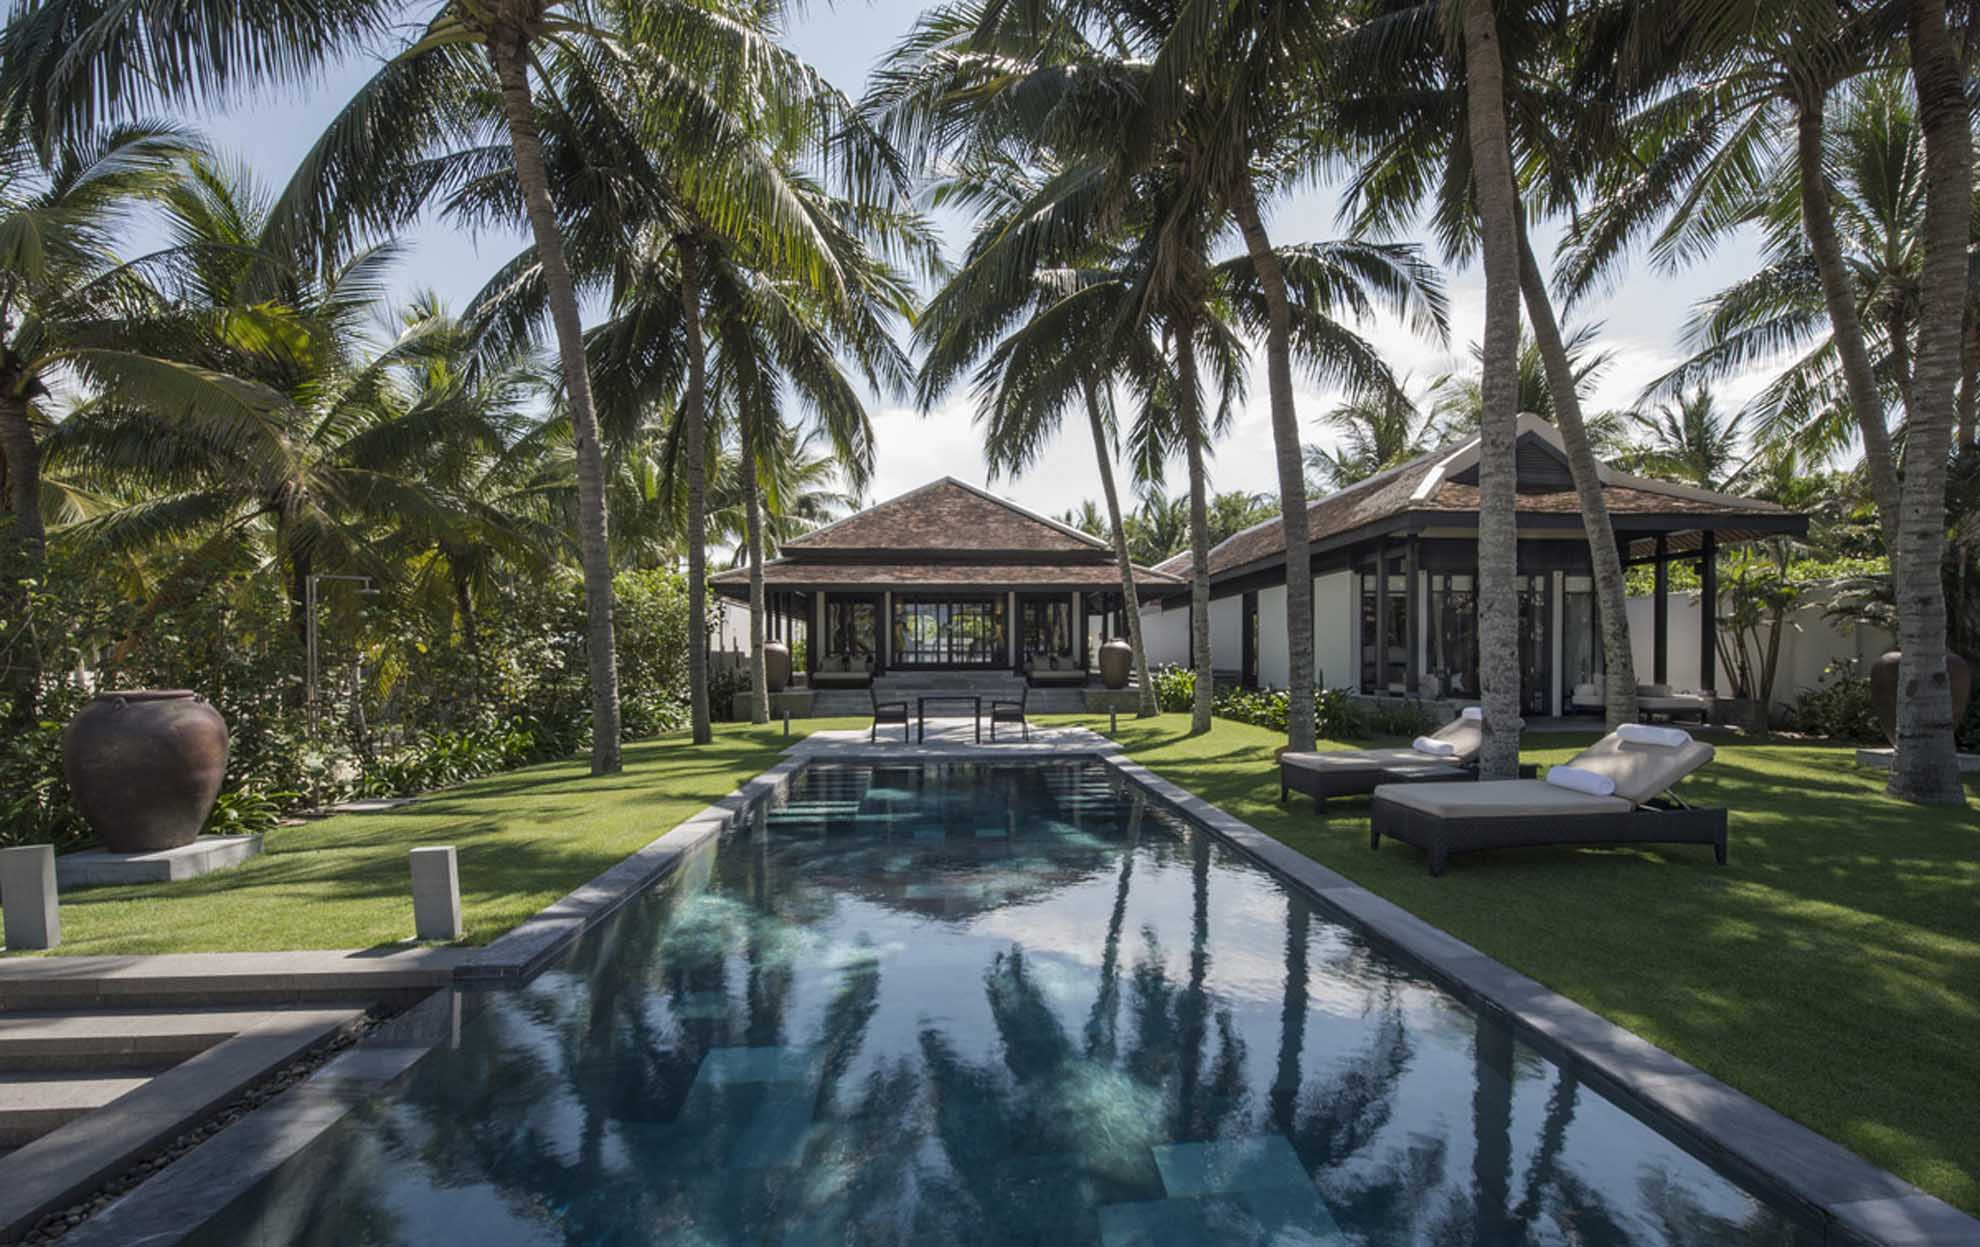 Four Seasons Hoi An Vietnam Asia Asian lesbian gay queer wedding honeymoon accommodation travel Dancing With Her directory magazine (2)